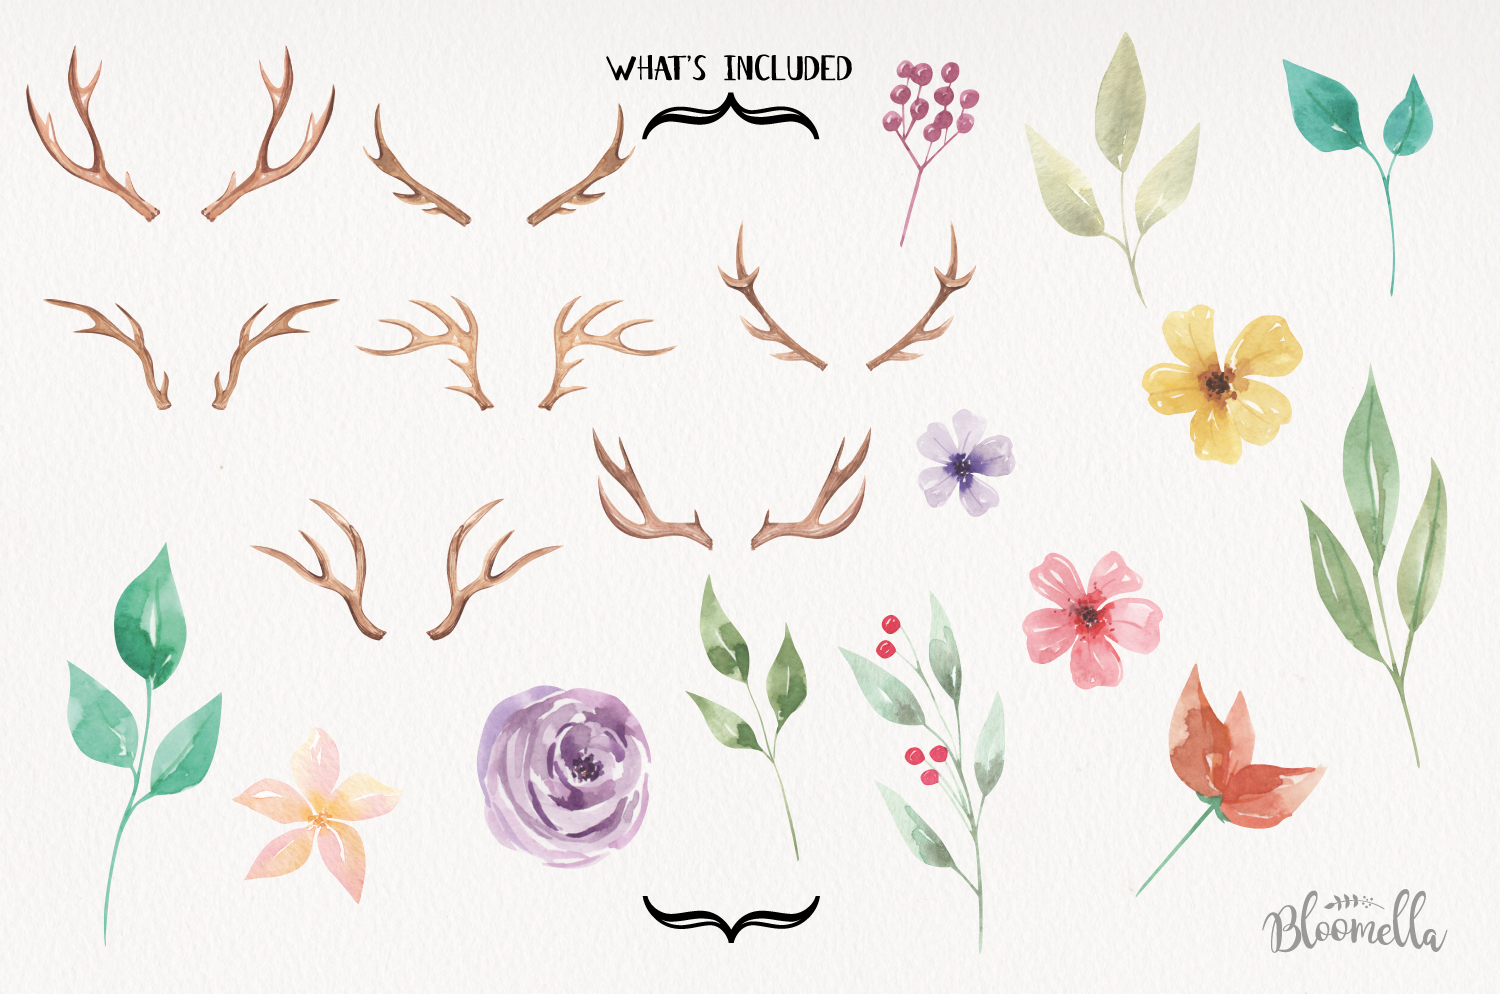 Create Your Own Watercolor Elements Flowers Antlers Florals example image 3